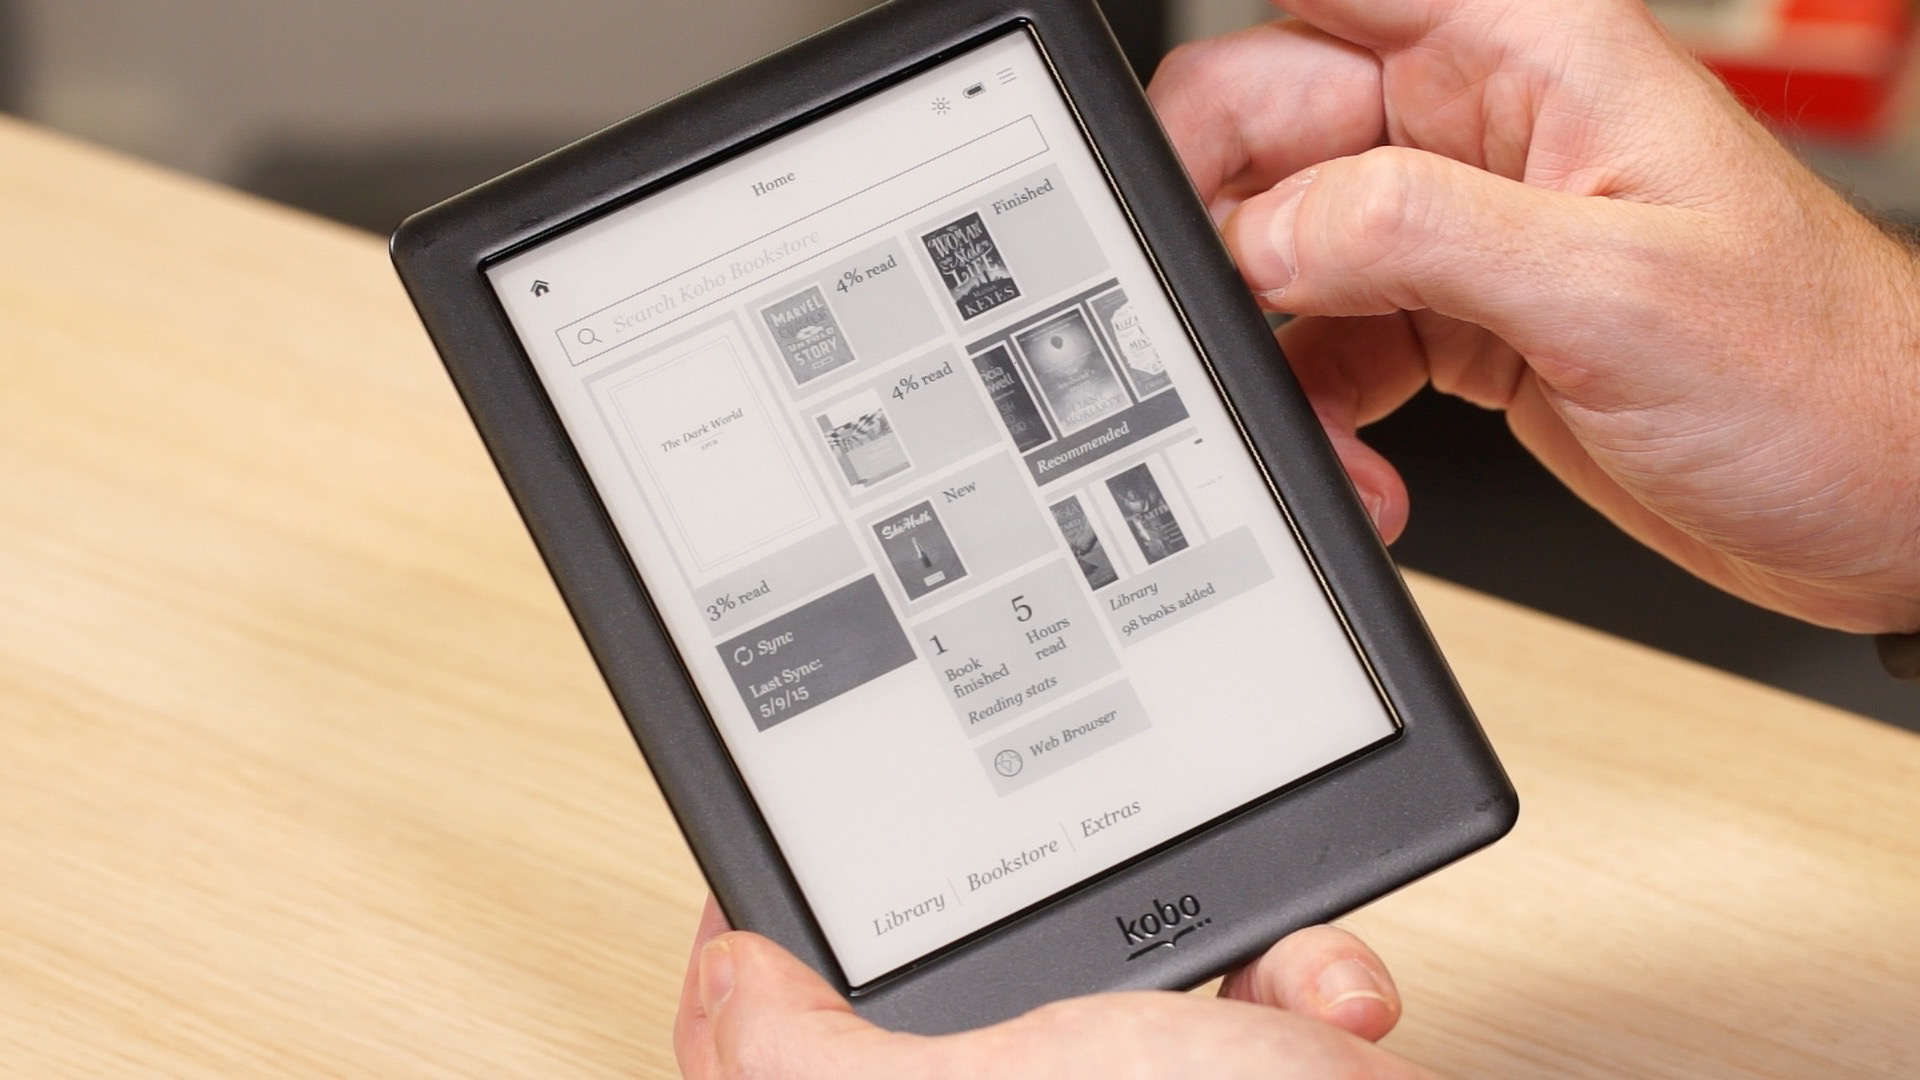 Video: Kobo Glo HD: Solid design combined with a good price